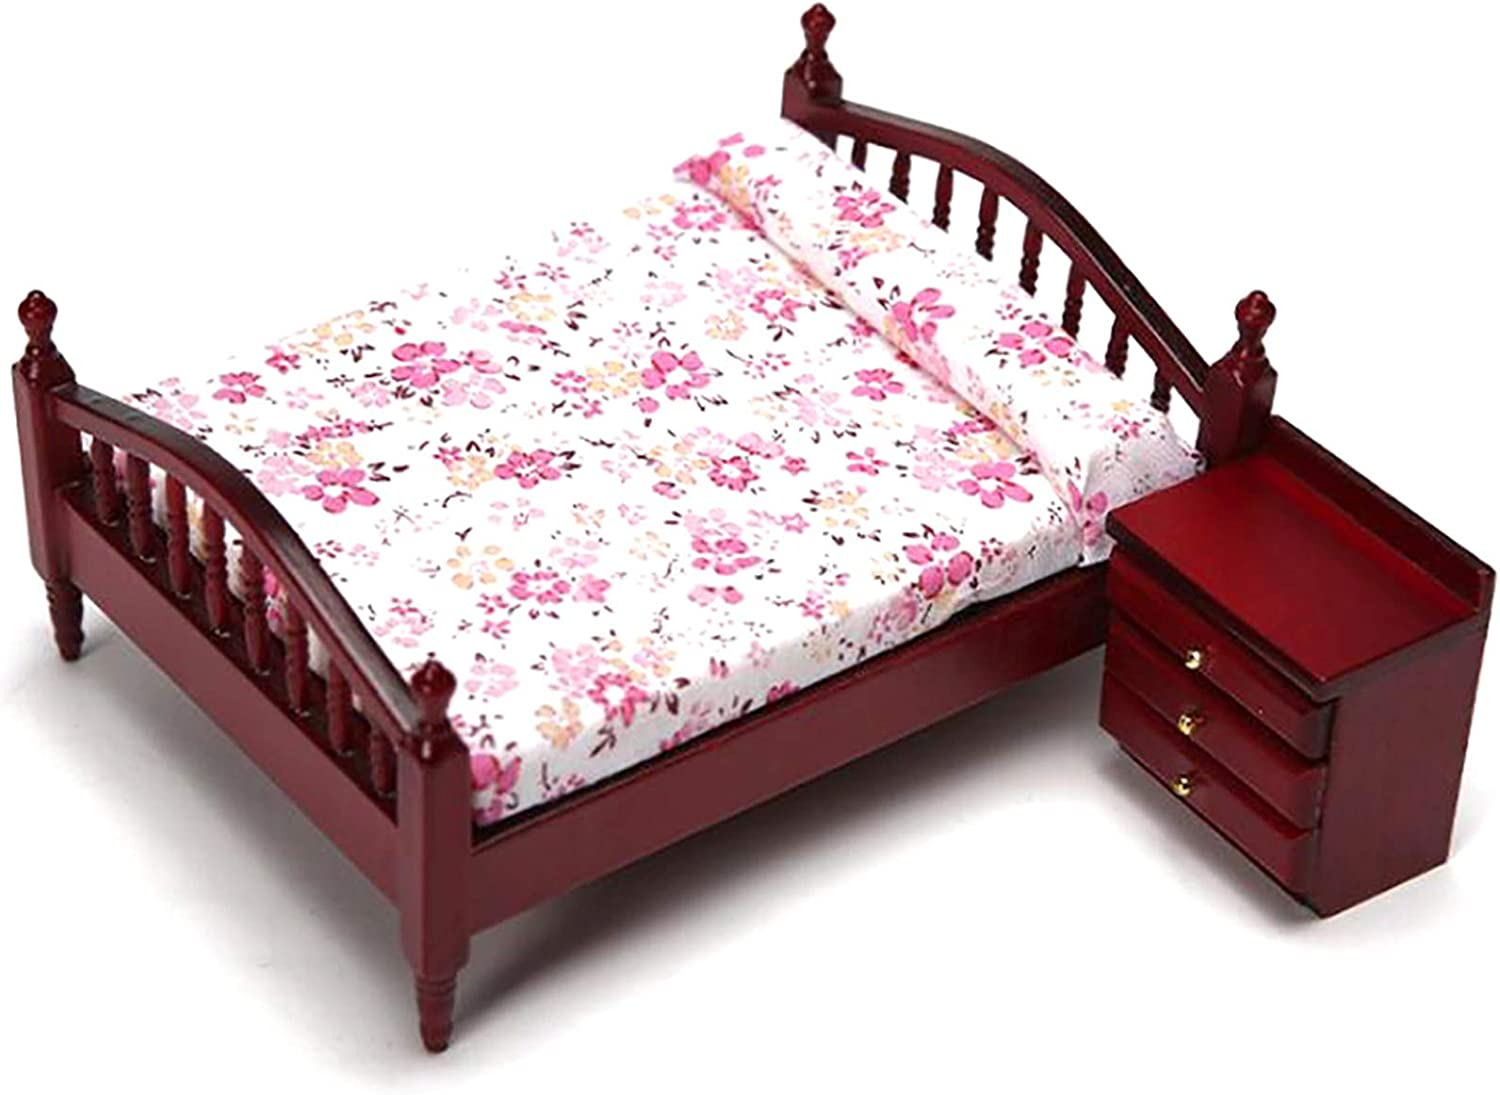 RUIYELE 1/12 Wooden Miniature Double Bed and Bedside Table, Mini Dollhouse Bedroom Miniature Furniture Model, Simulation Tiny Double Bed Kids Toy DIY Home Decoration Gifts (Style 1)